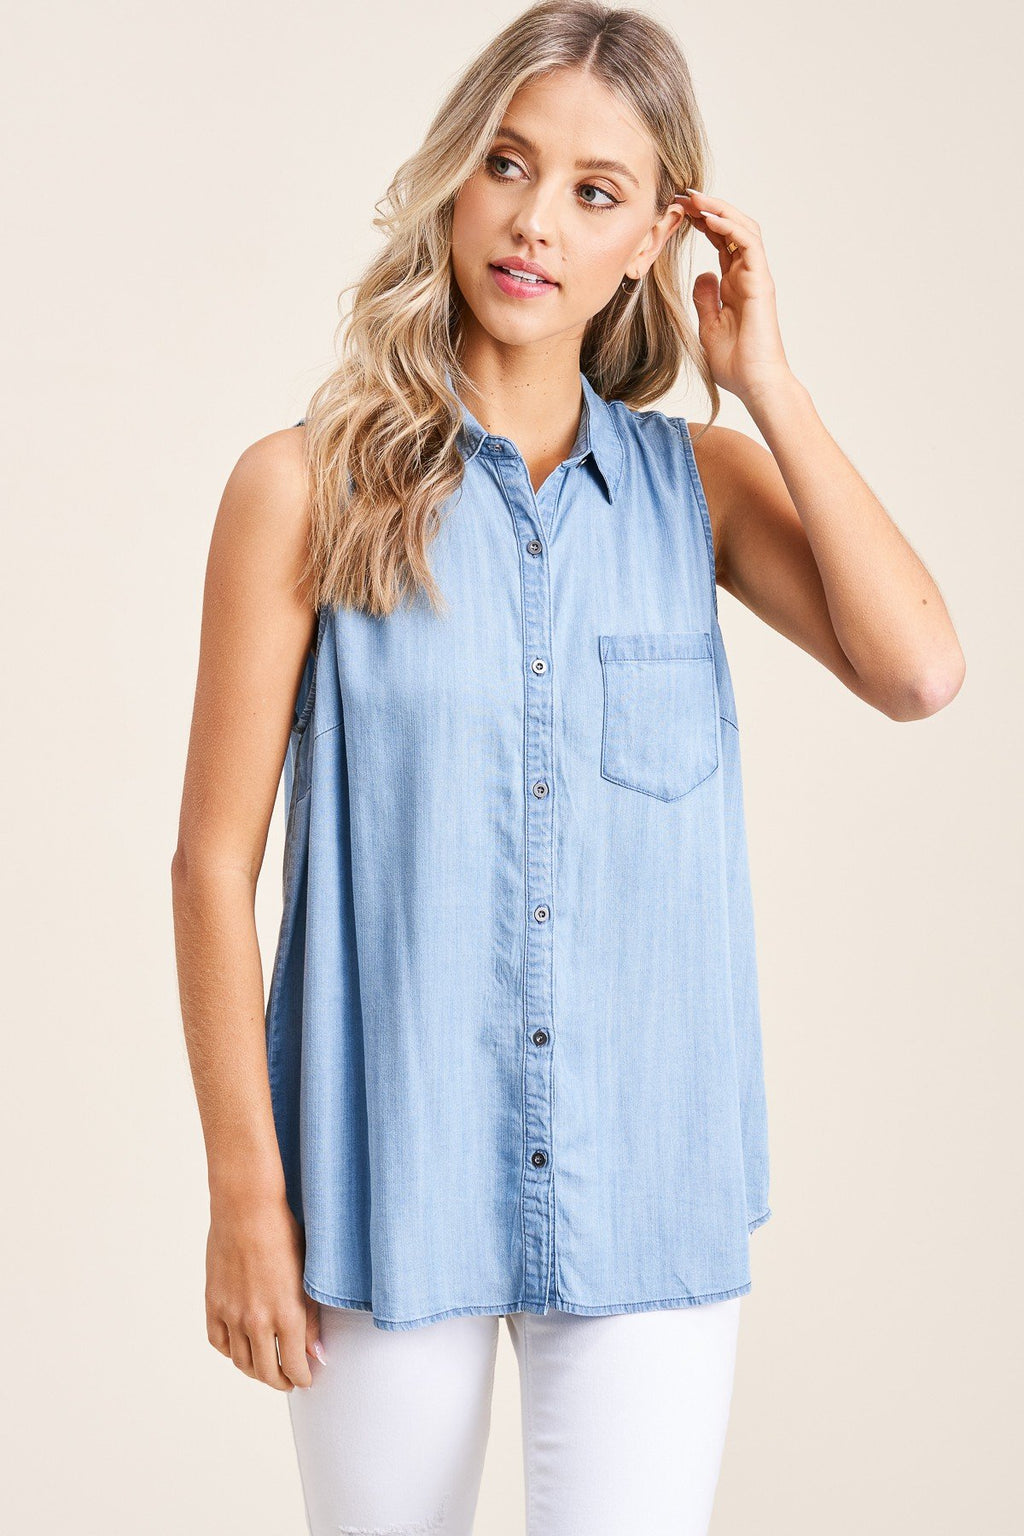 Adeline Short Sleeve Button Up Denim Top - Light